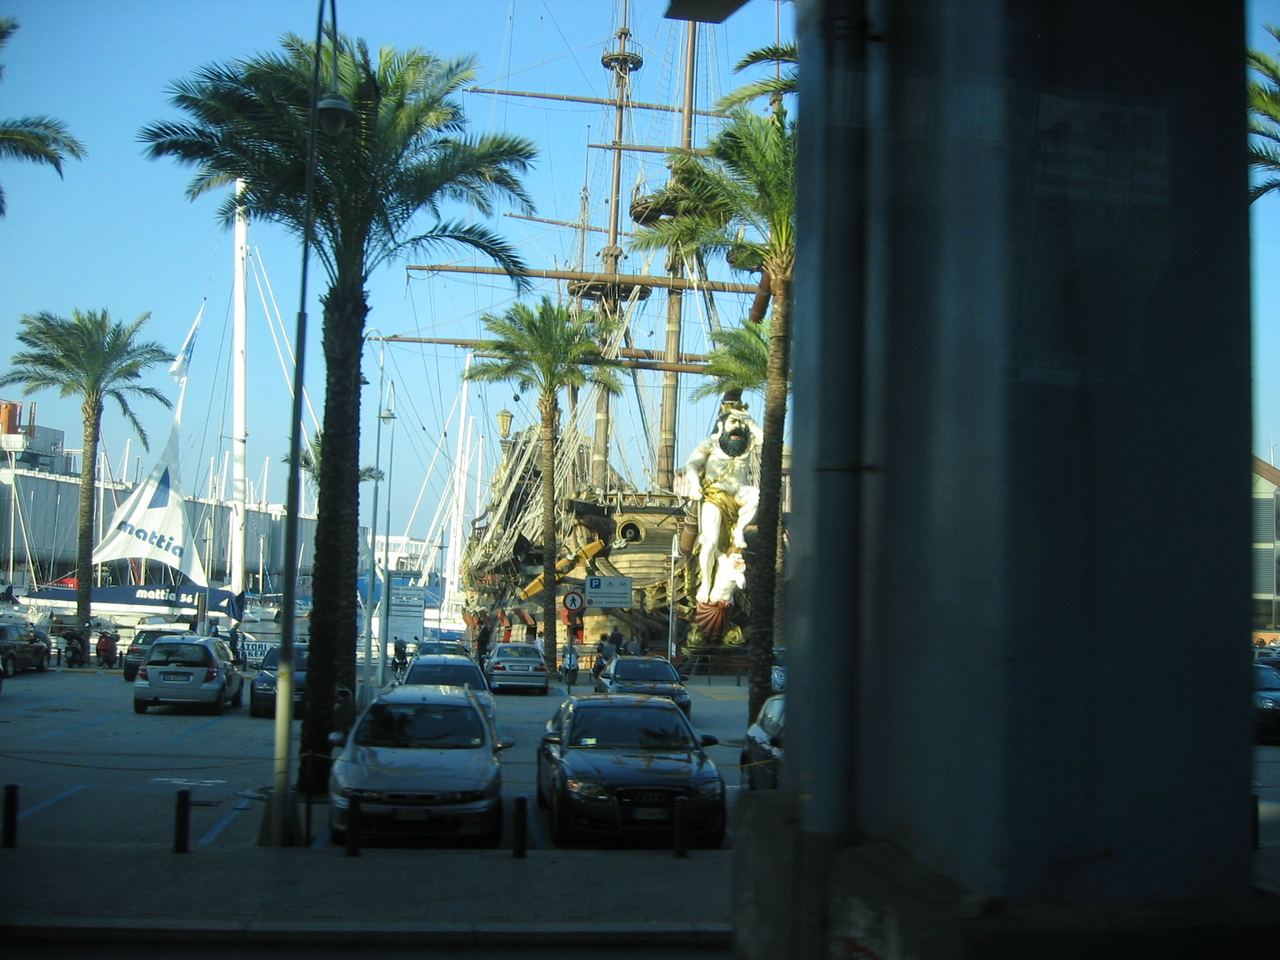 Pirate Ship reproduced for movie, sits at Port of Genoa.